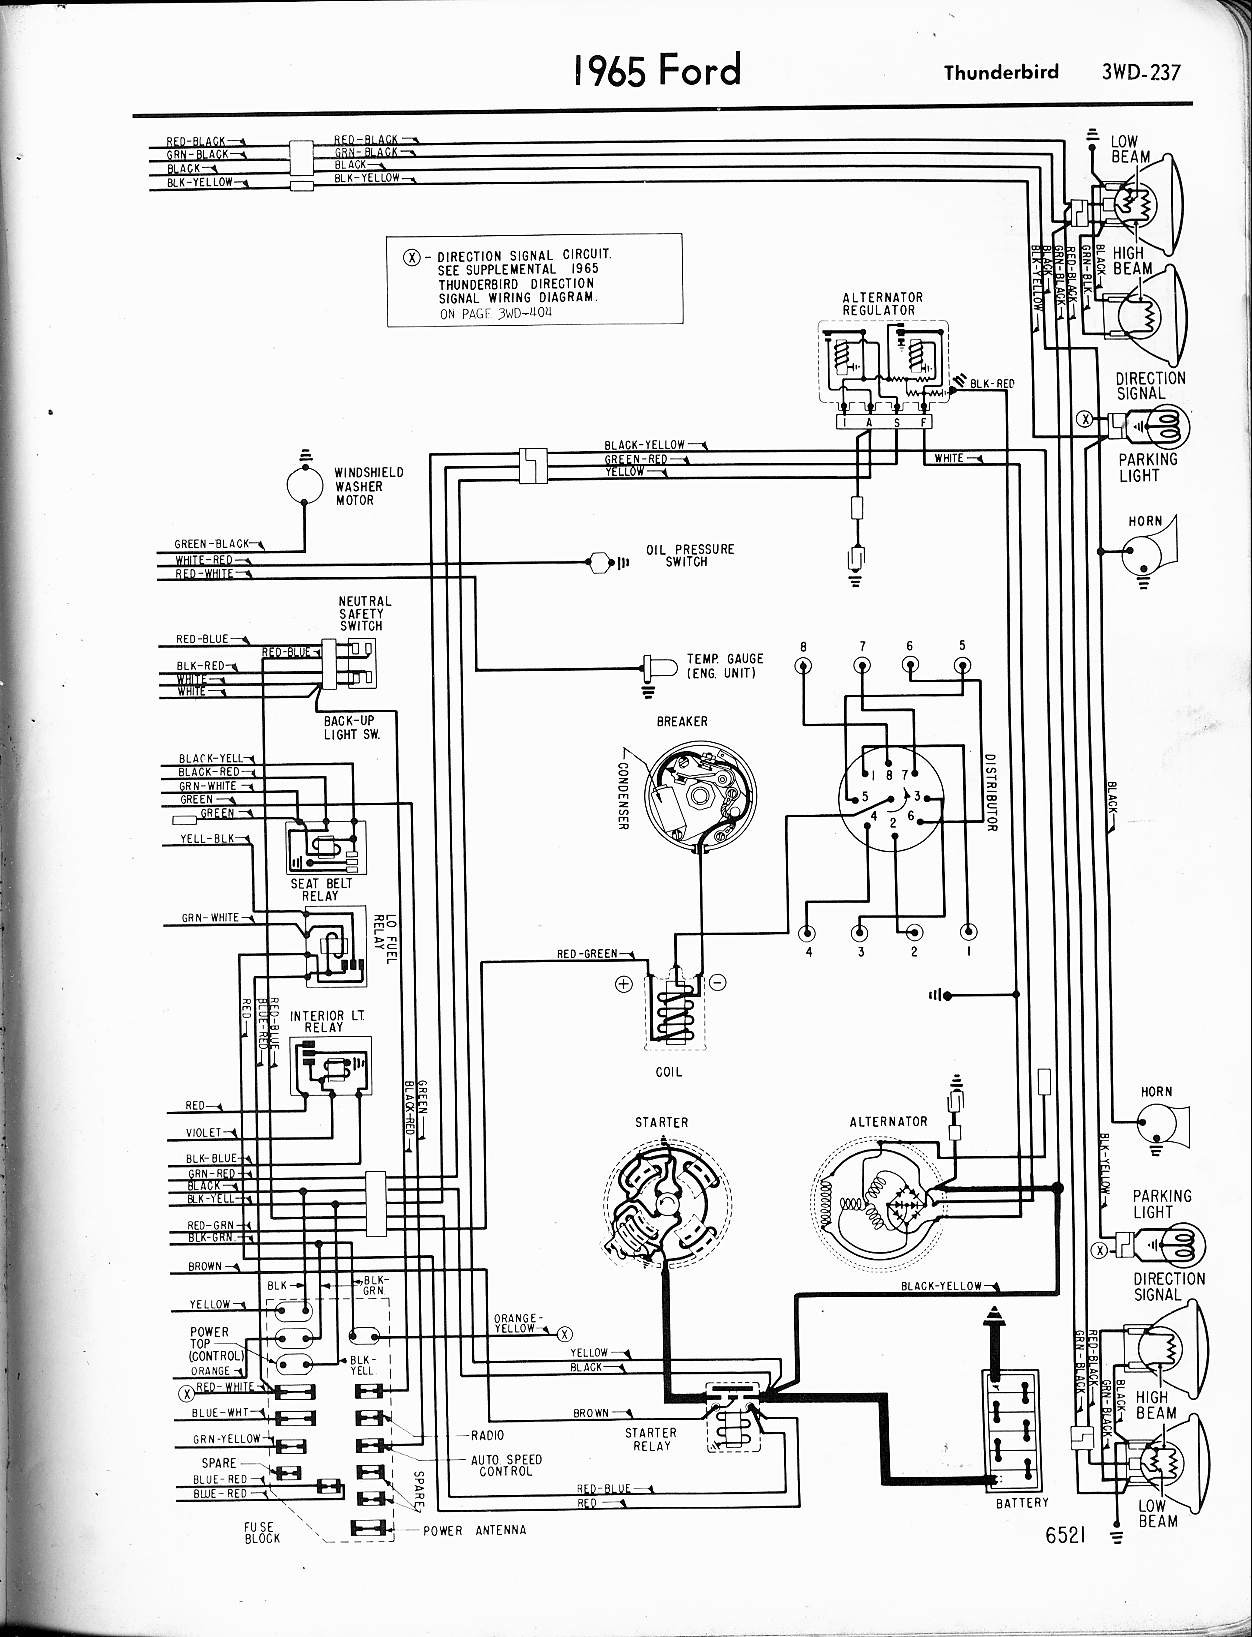 Ford 3 0 V6 Engine Diagram ford Econoline Wiring Diagram Also 1966 ford Thunderbird Wiring Of Ford 3 0 V6 Engine Diagram